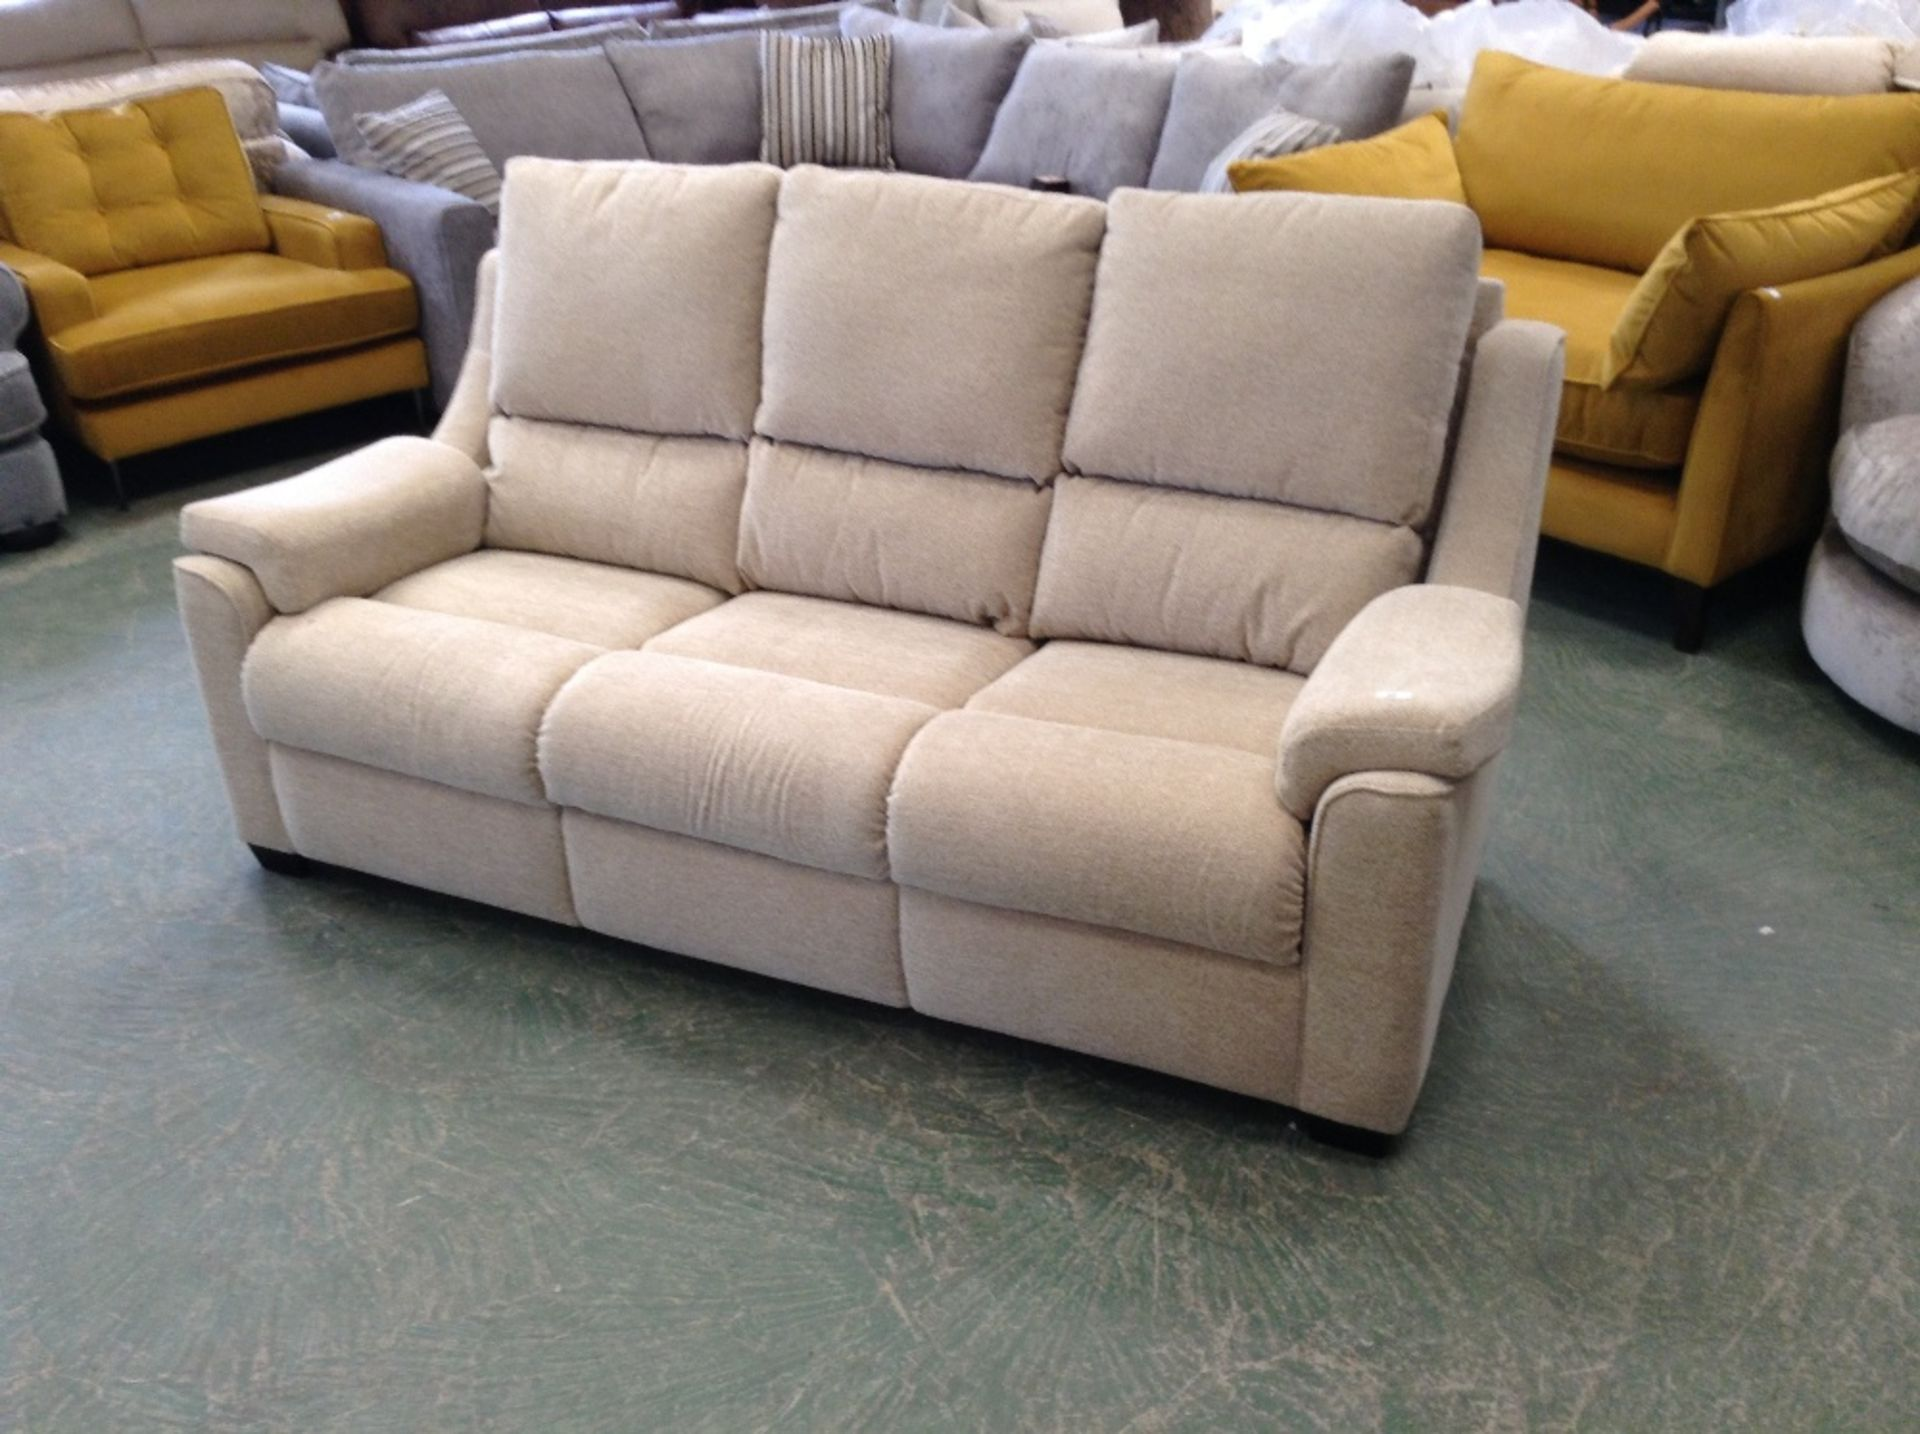 Lot 46 - BISCUIT HIGH BACK 3 SEATER SOFA (TROO1629-WOO59896